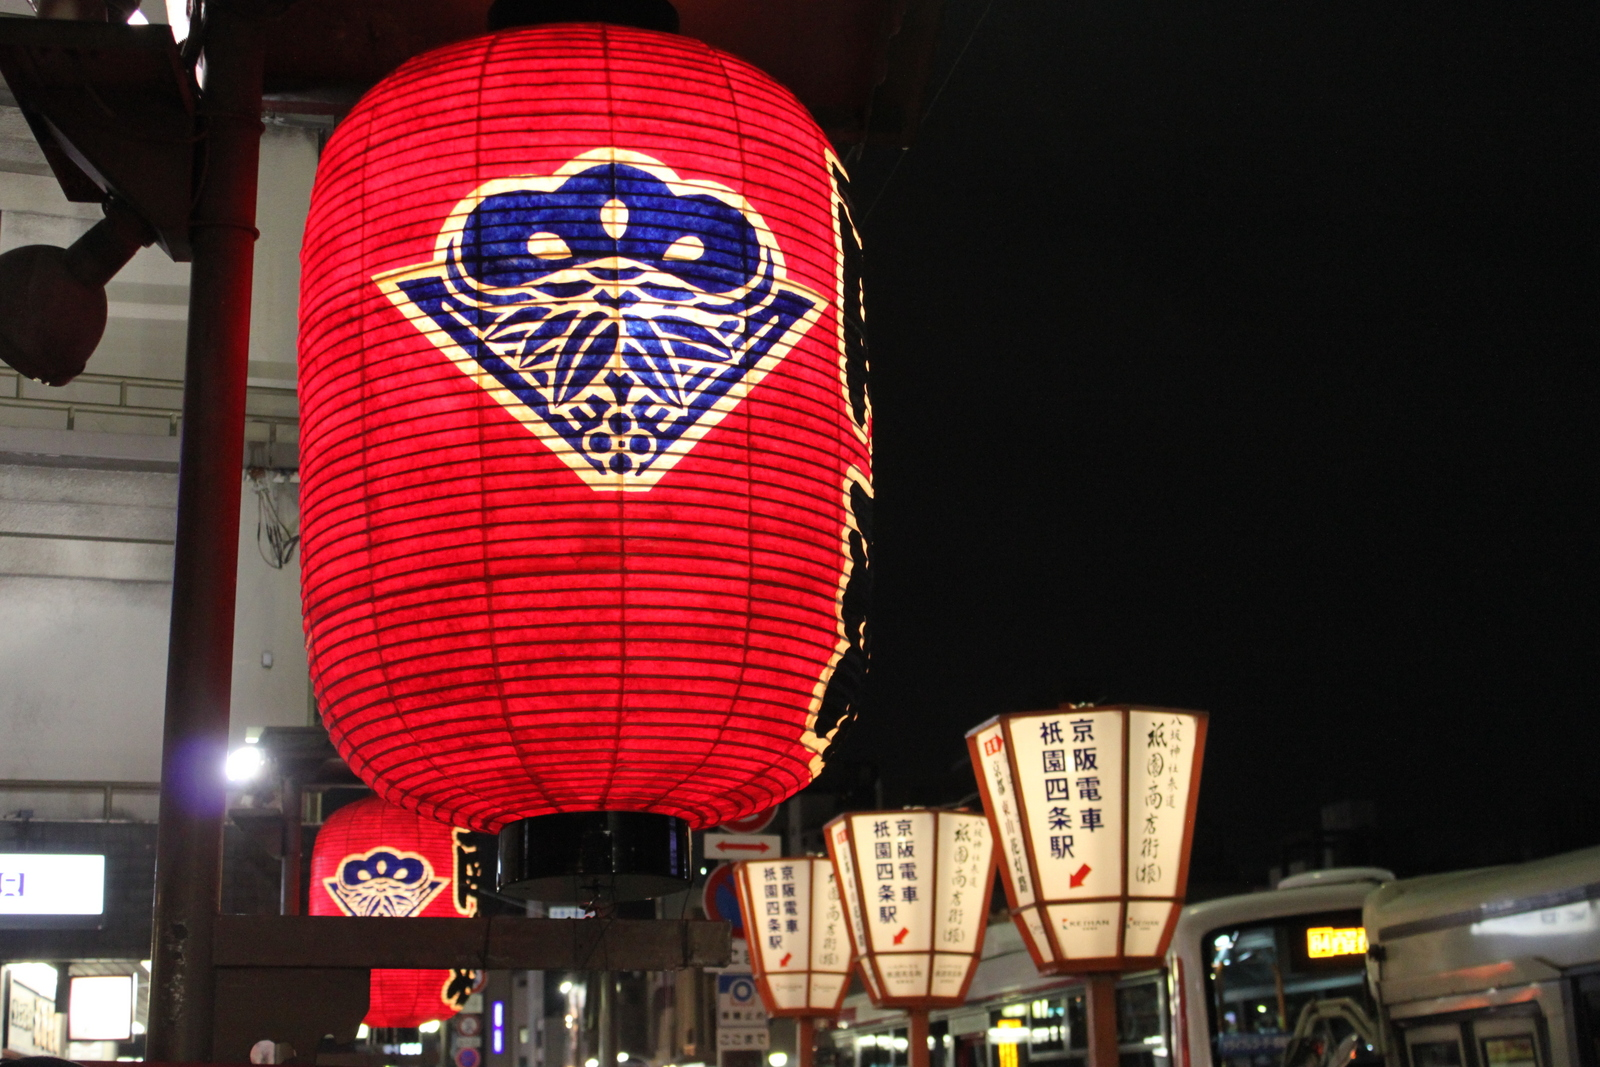 Lampion in Kyoto-Gion